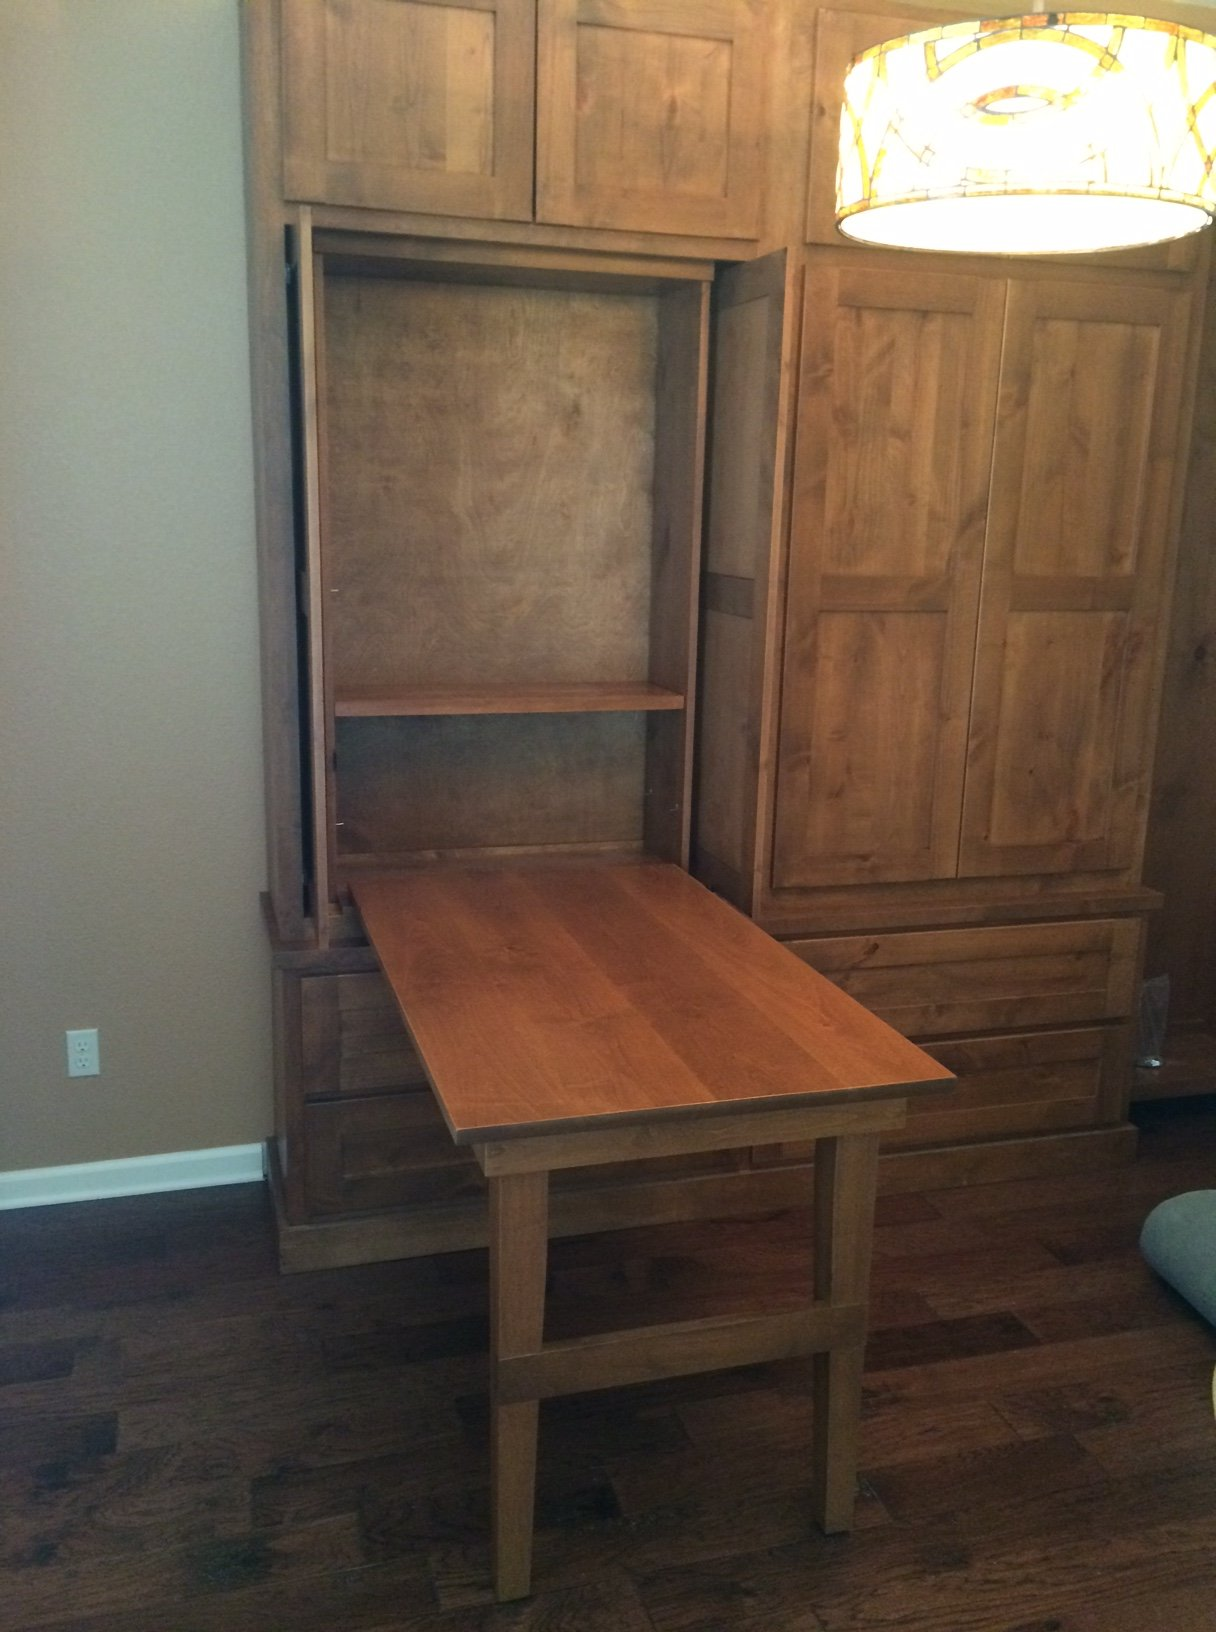 wall storage with drop down desk in down position jb murphy co custom cabinets